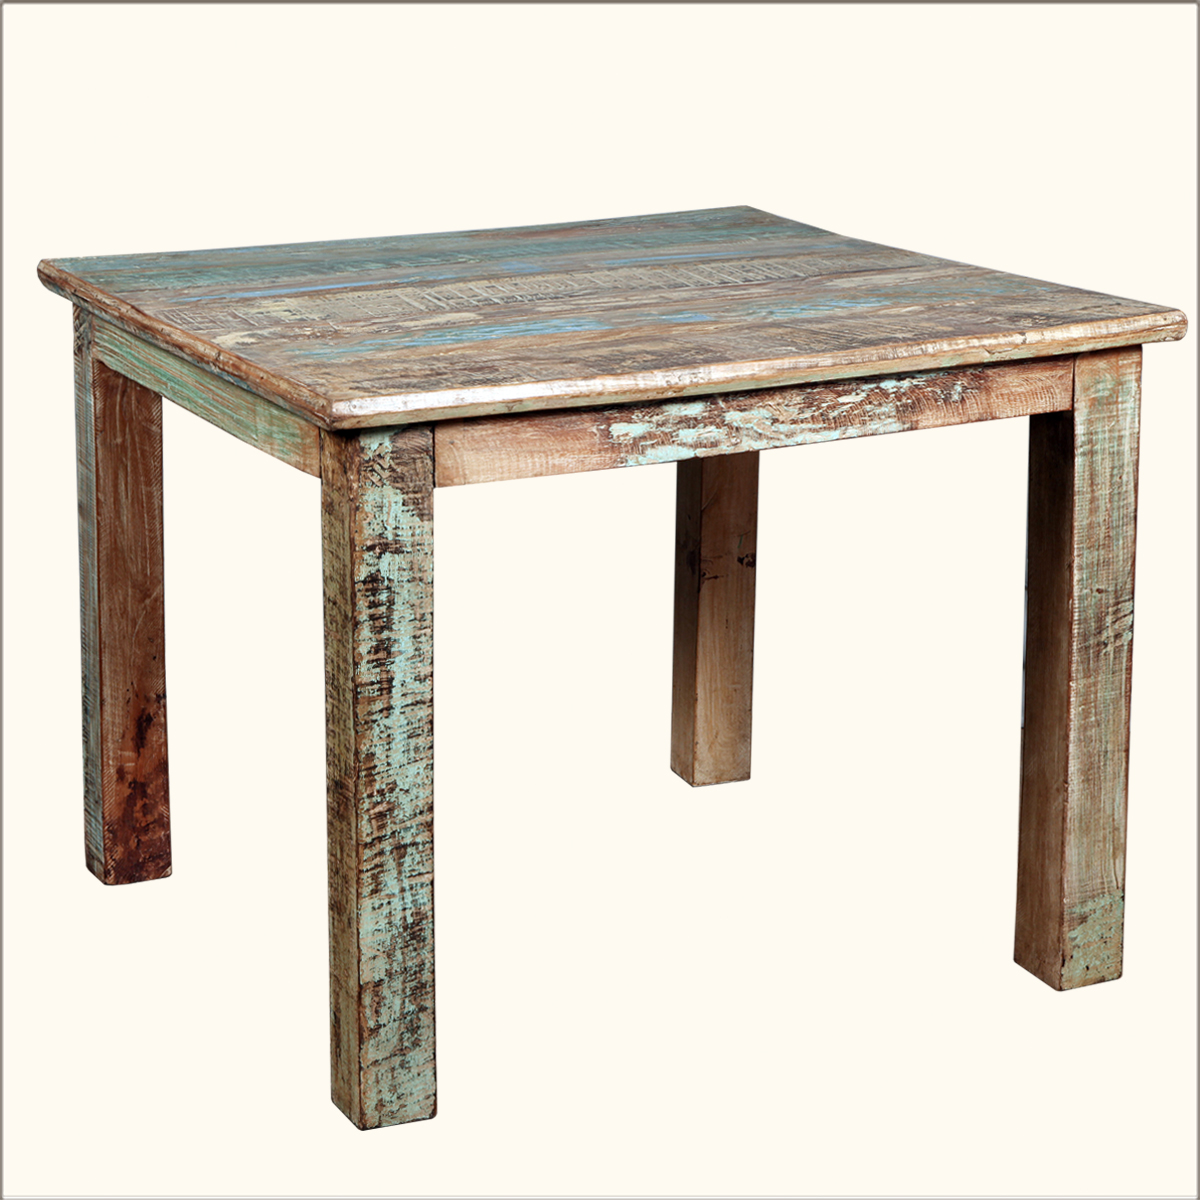 Rustic Reclaimed Wood Distressed 40 Square Kitchen Dining Table